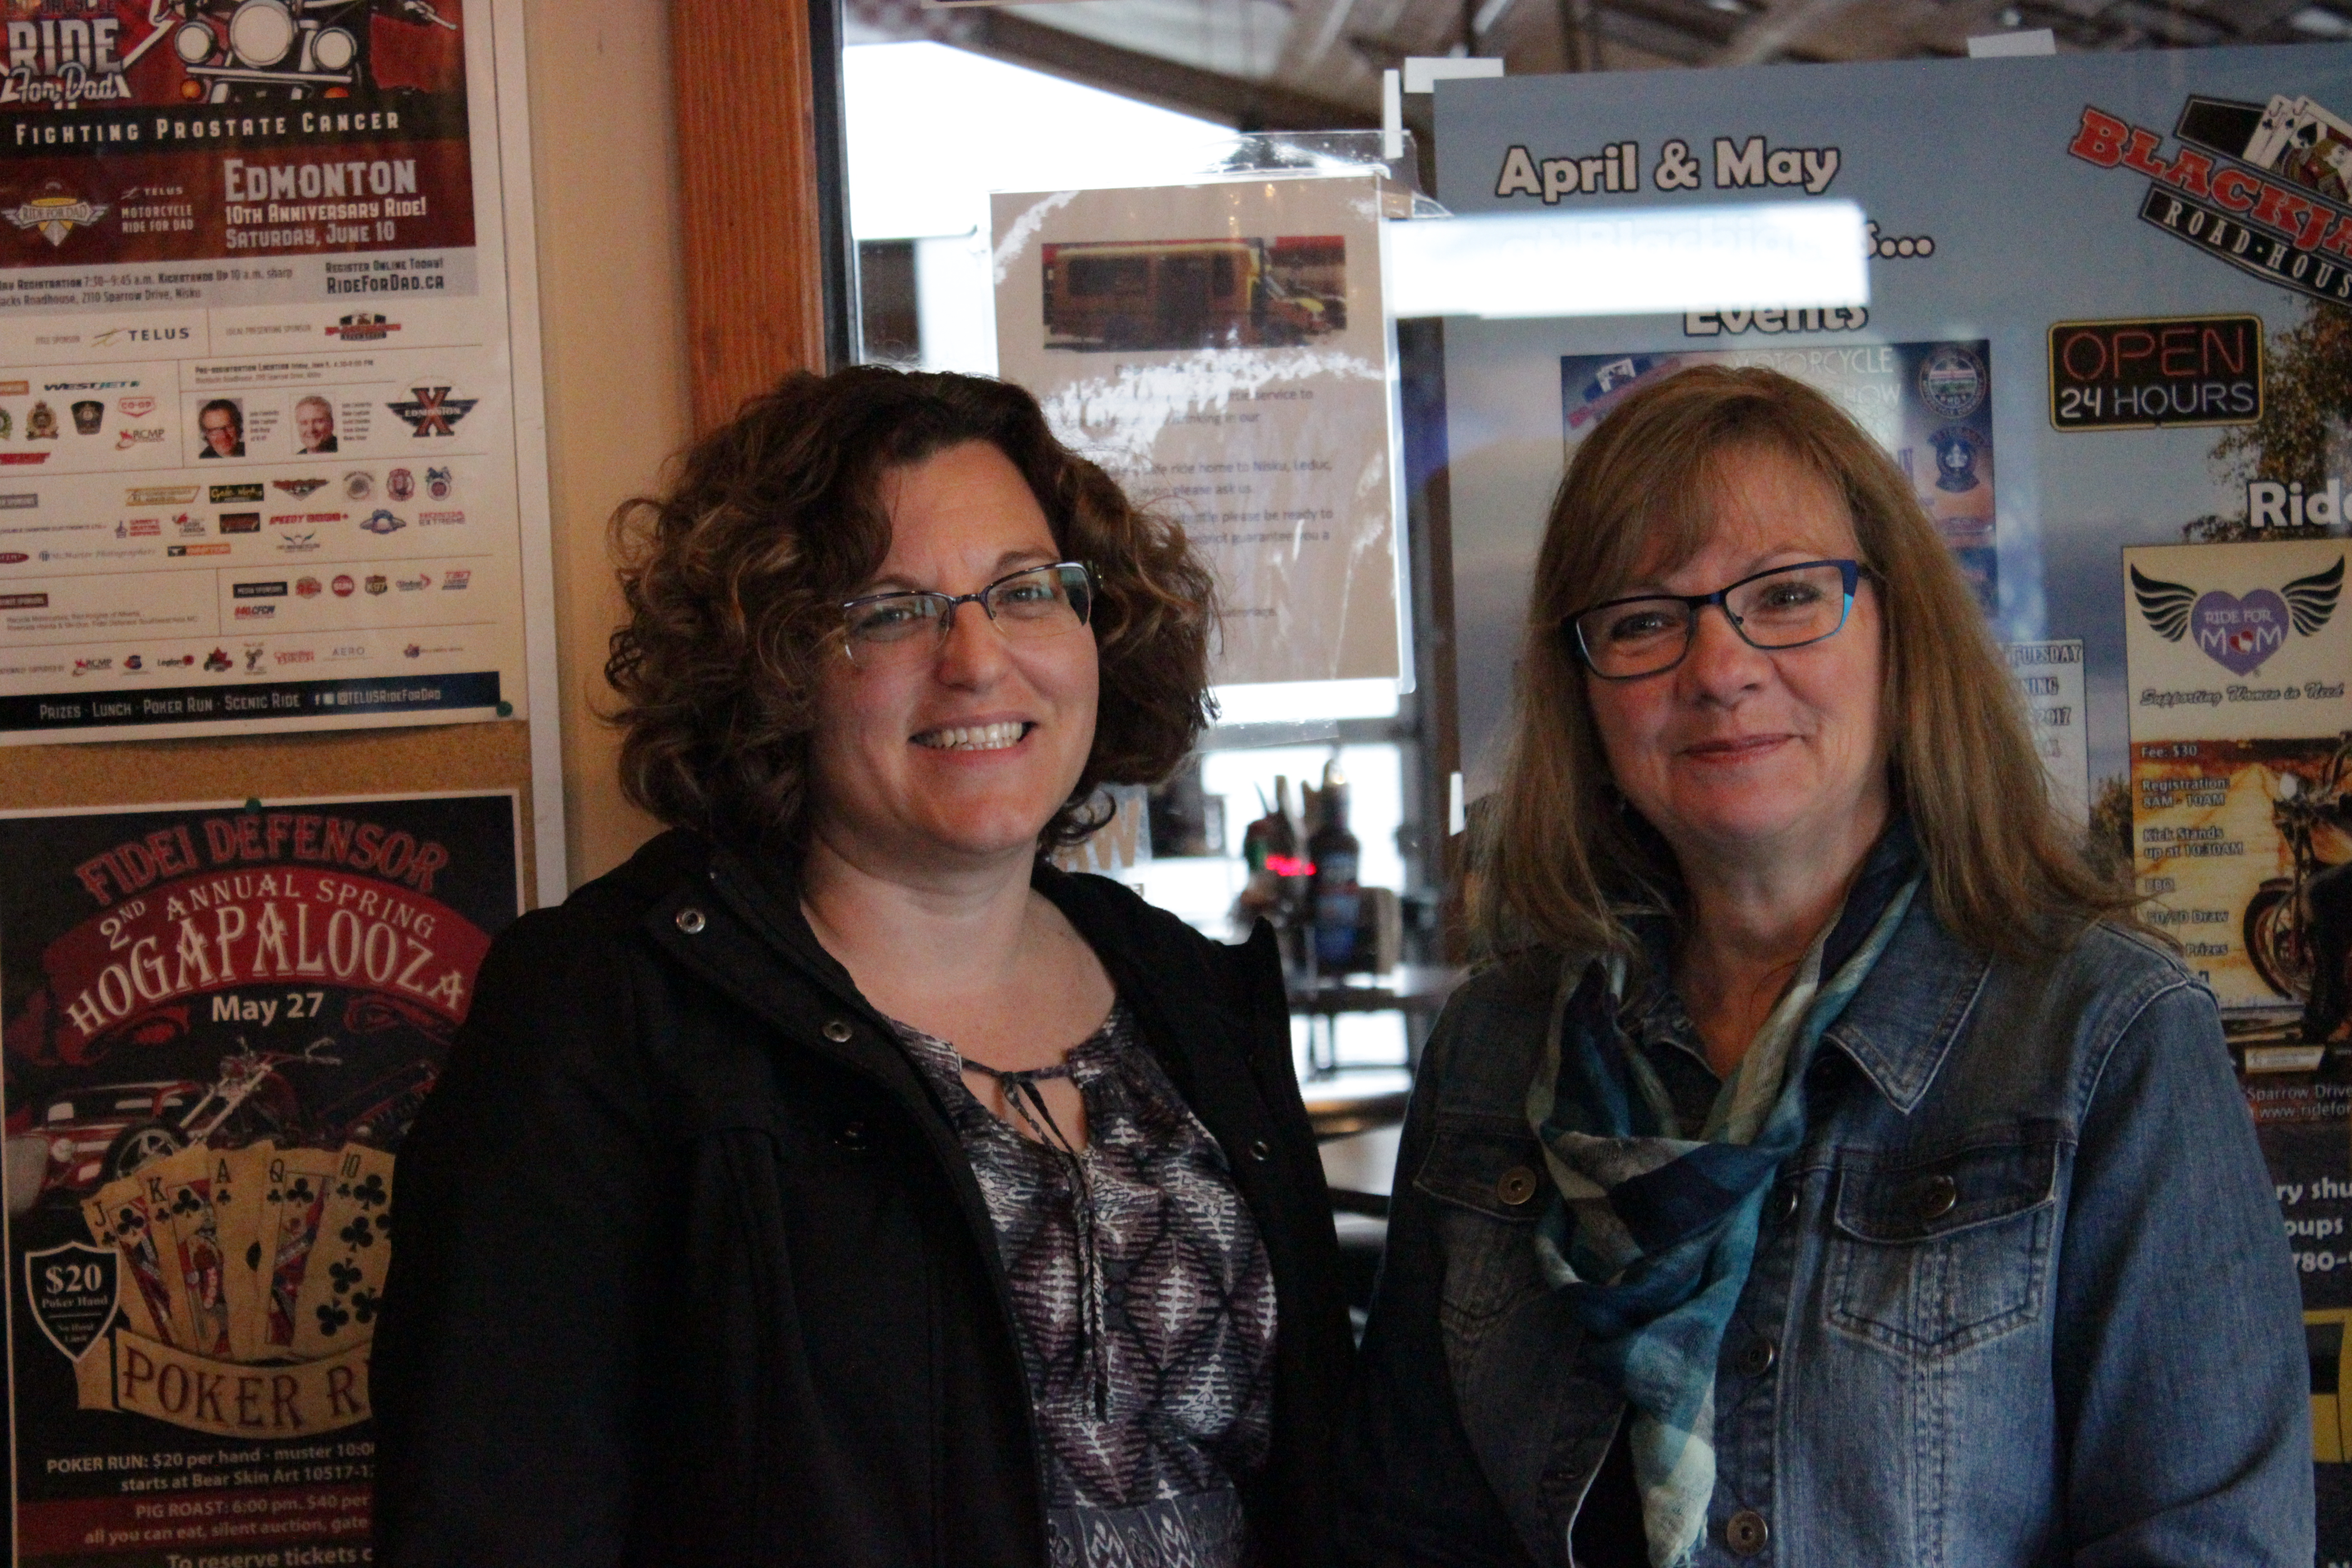 Volunteers from the Edmonton Domestic Violence Shelters Engage. Ride for Mom at Blackjacks Roadhouse & Games Room